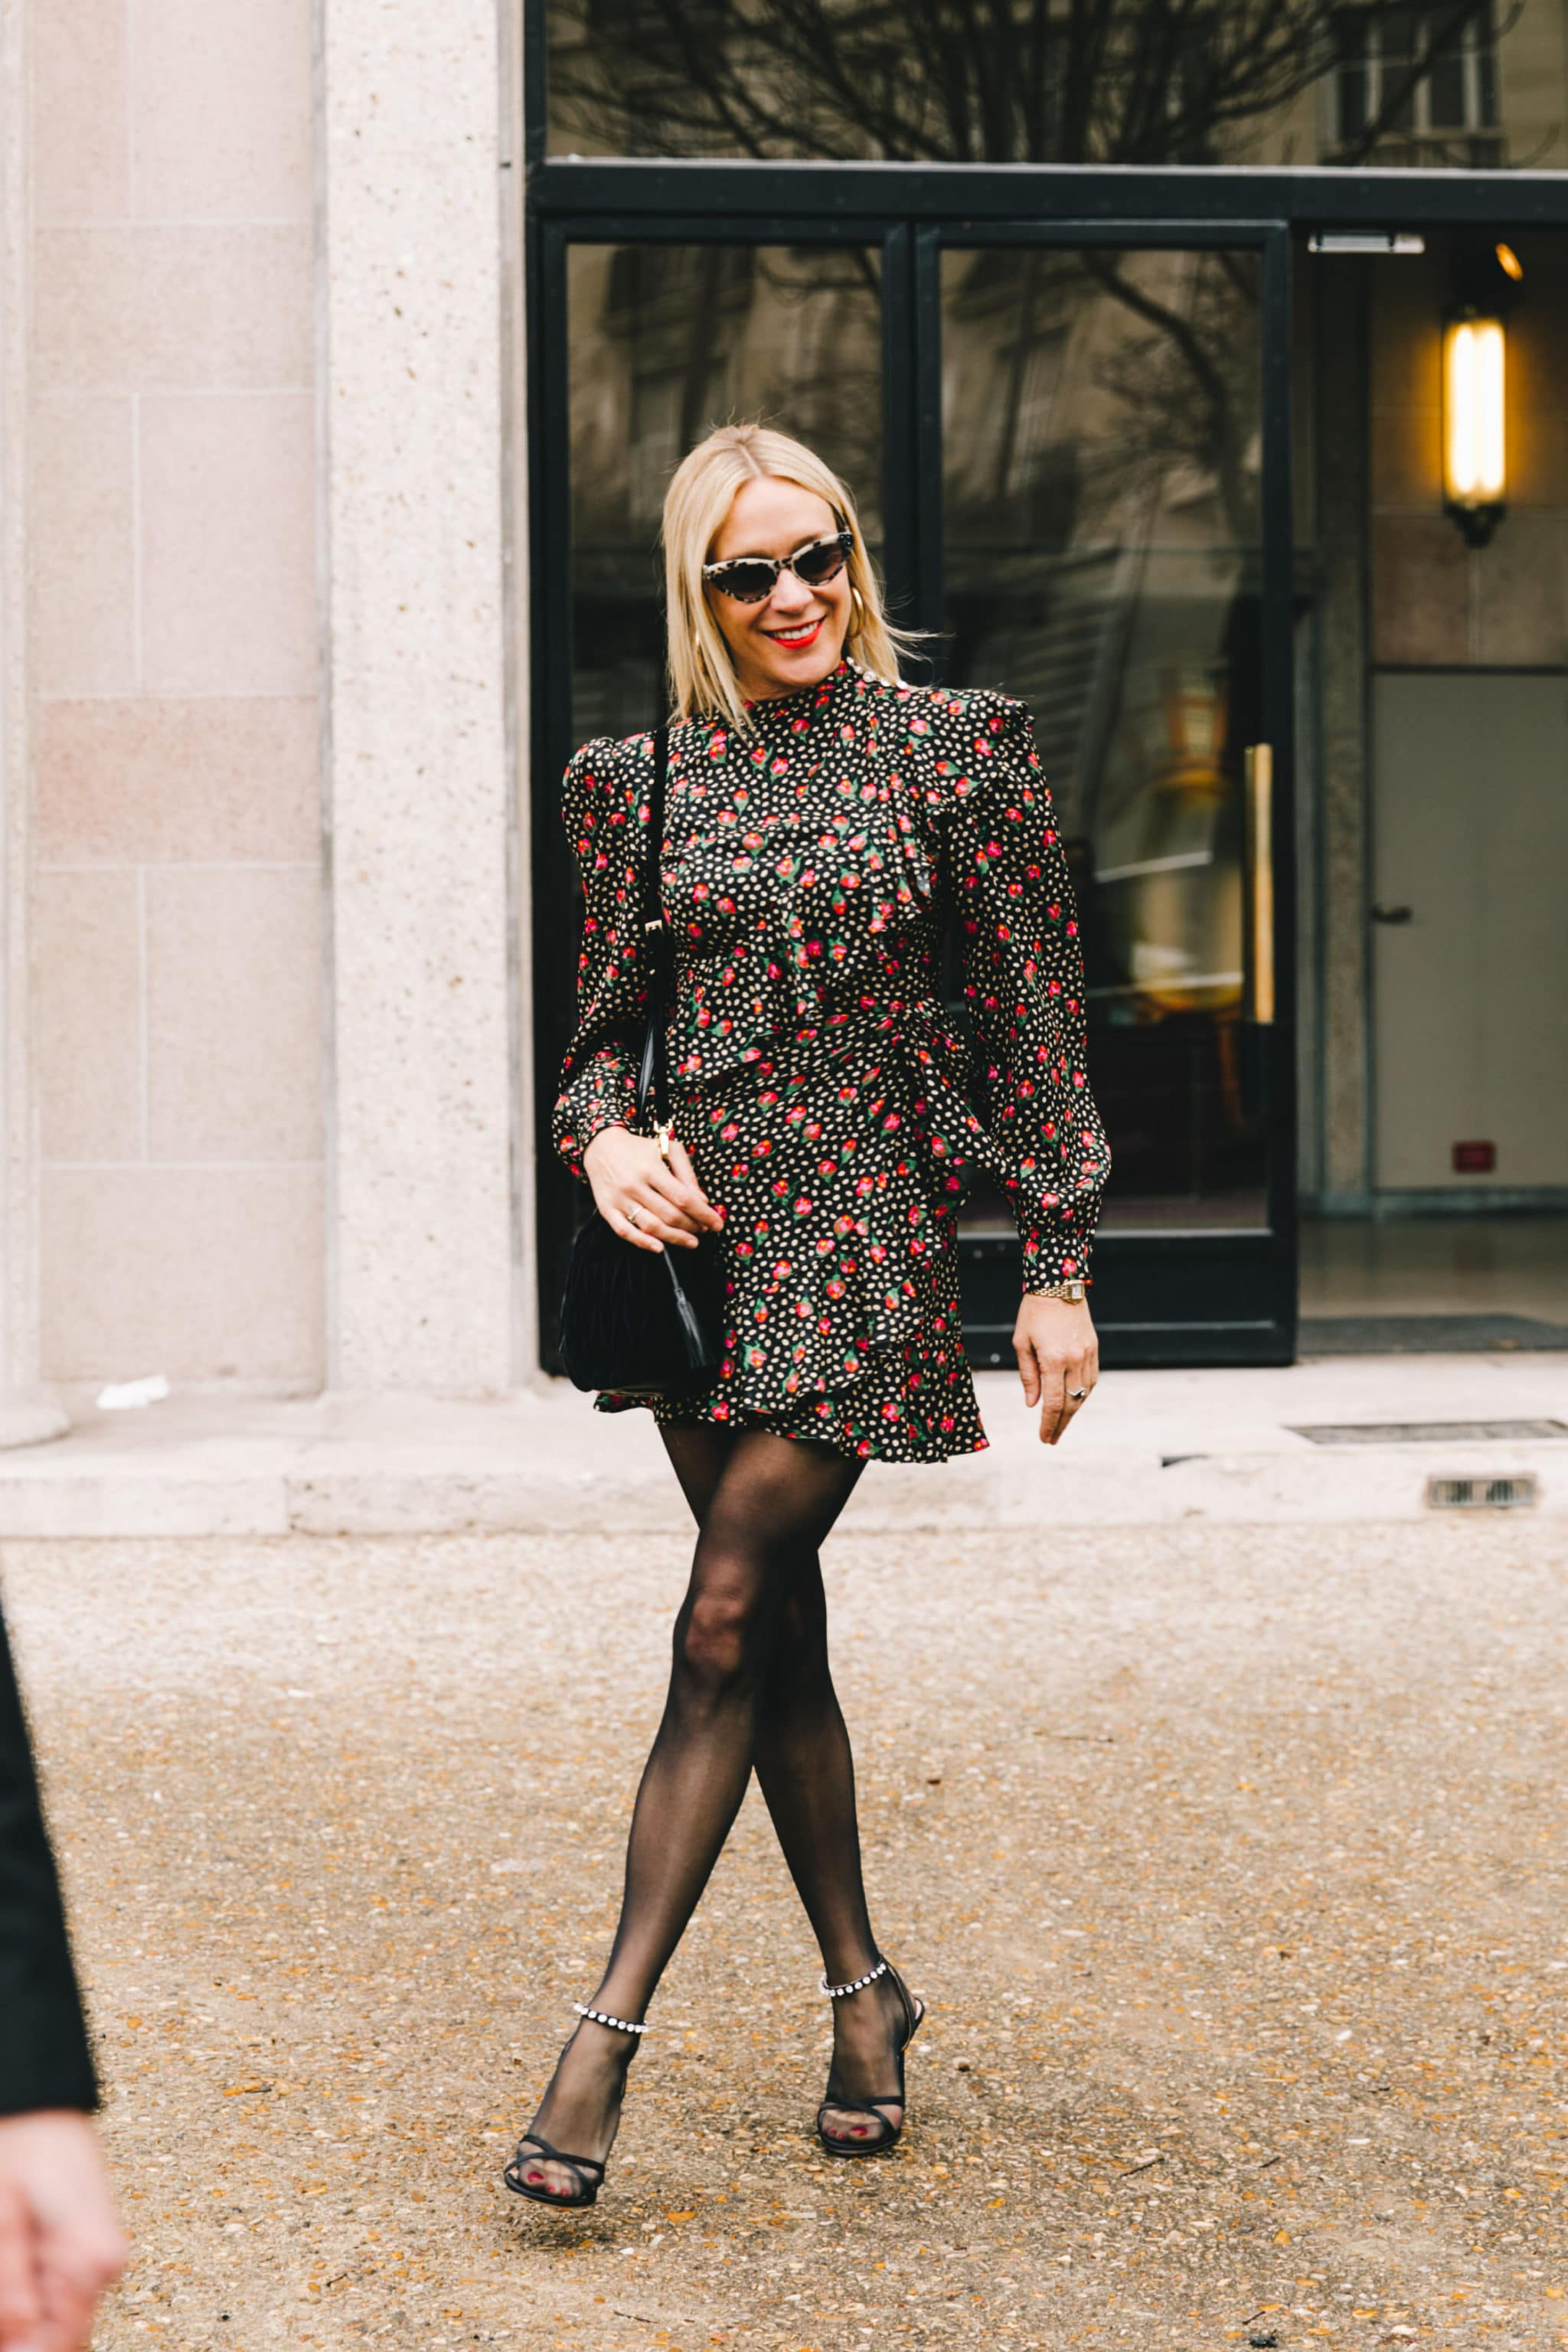 Floral Printed Mini Dress with Sheer Tights